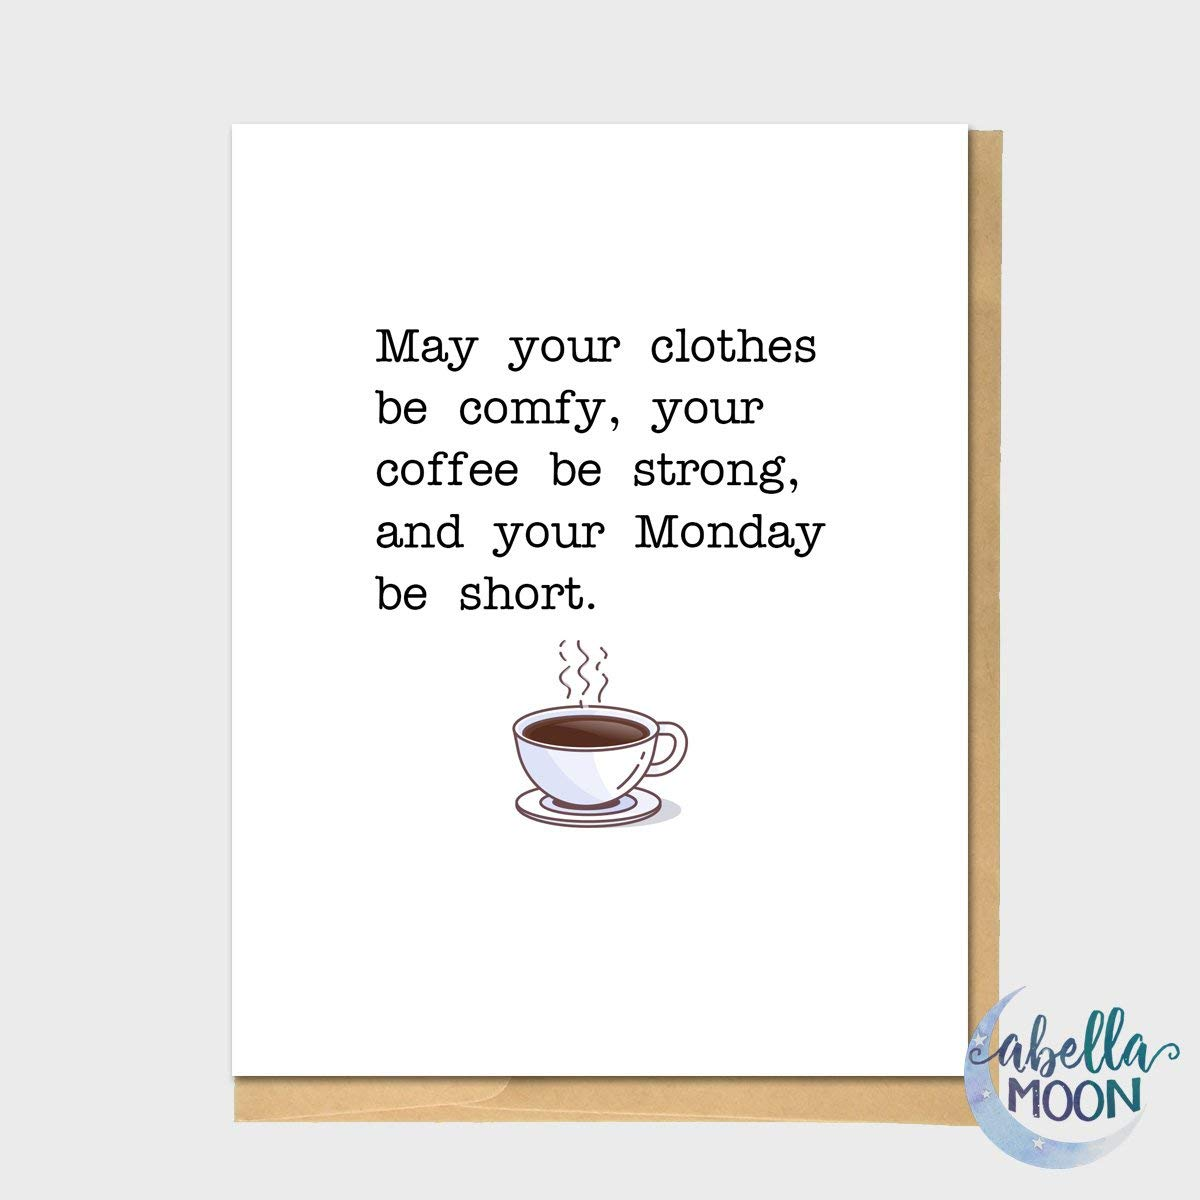 Cheap Funny Greeting Card Messages Find Funny Greeting Card Messages Deals On Line At Alibaba Com